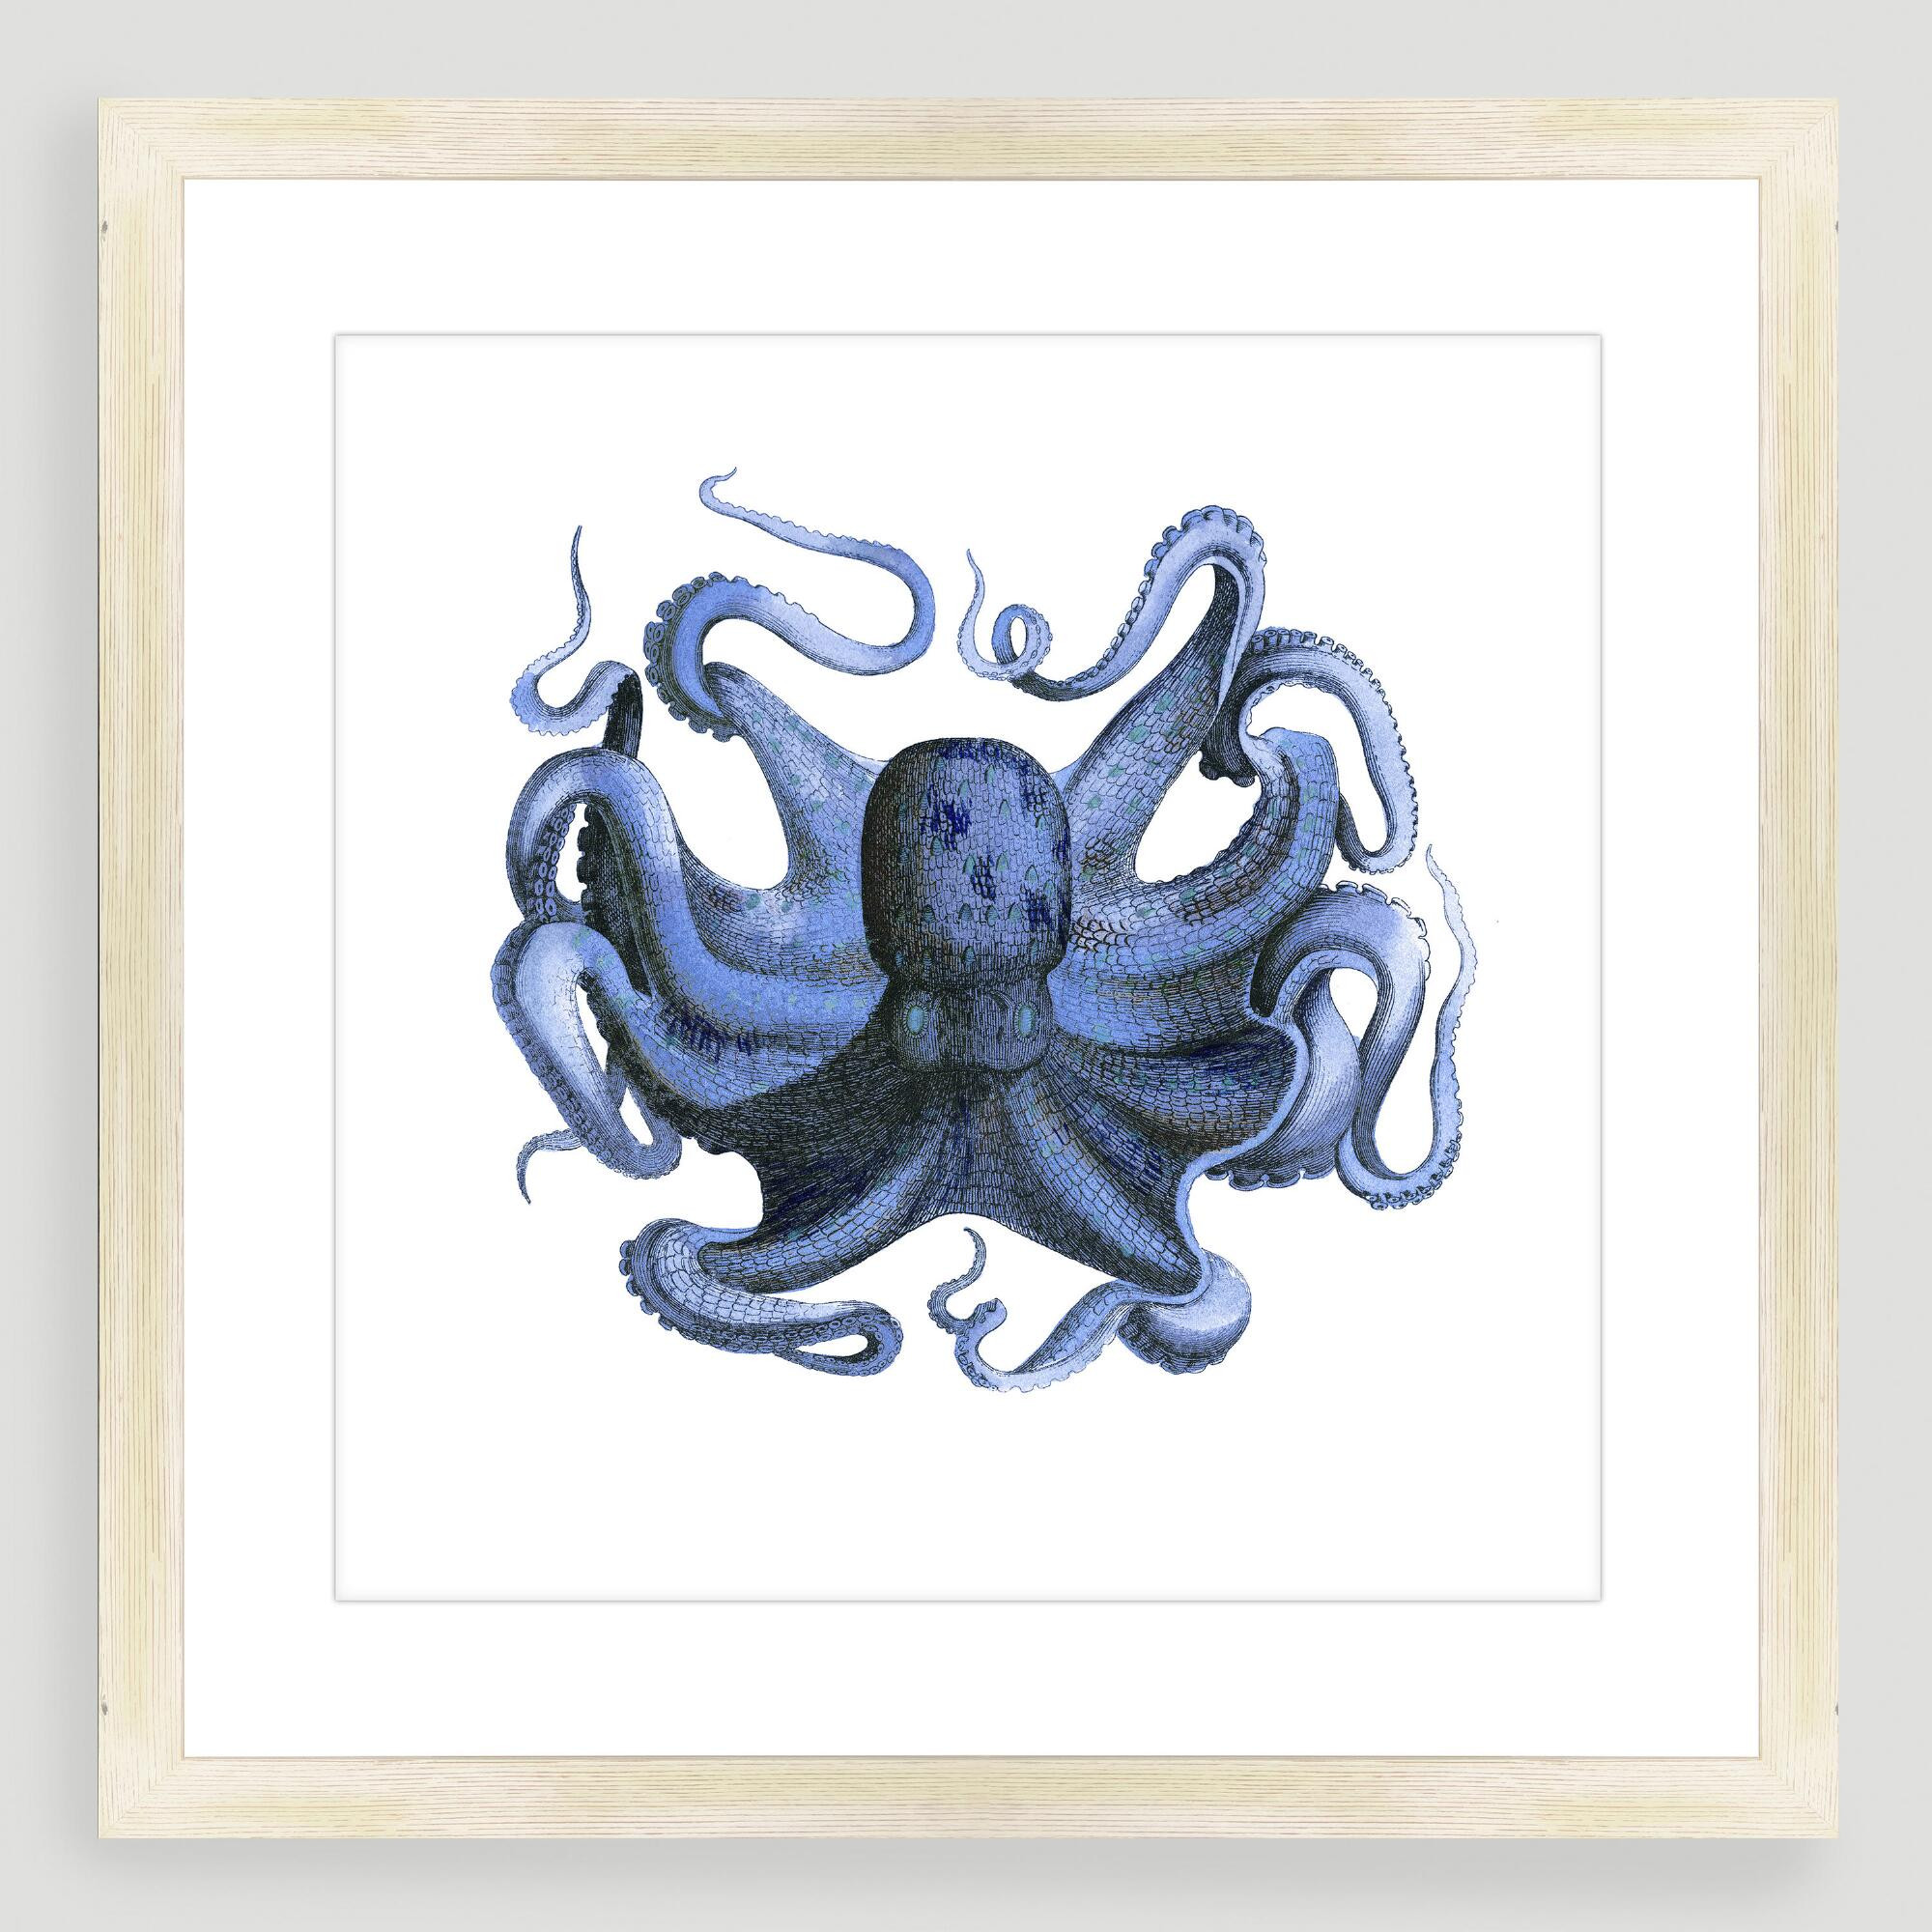 Best ideas about Octopus Wall Art . Save or Pin Vintage Style Octopus Sea Life Wall Art Now.